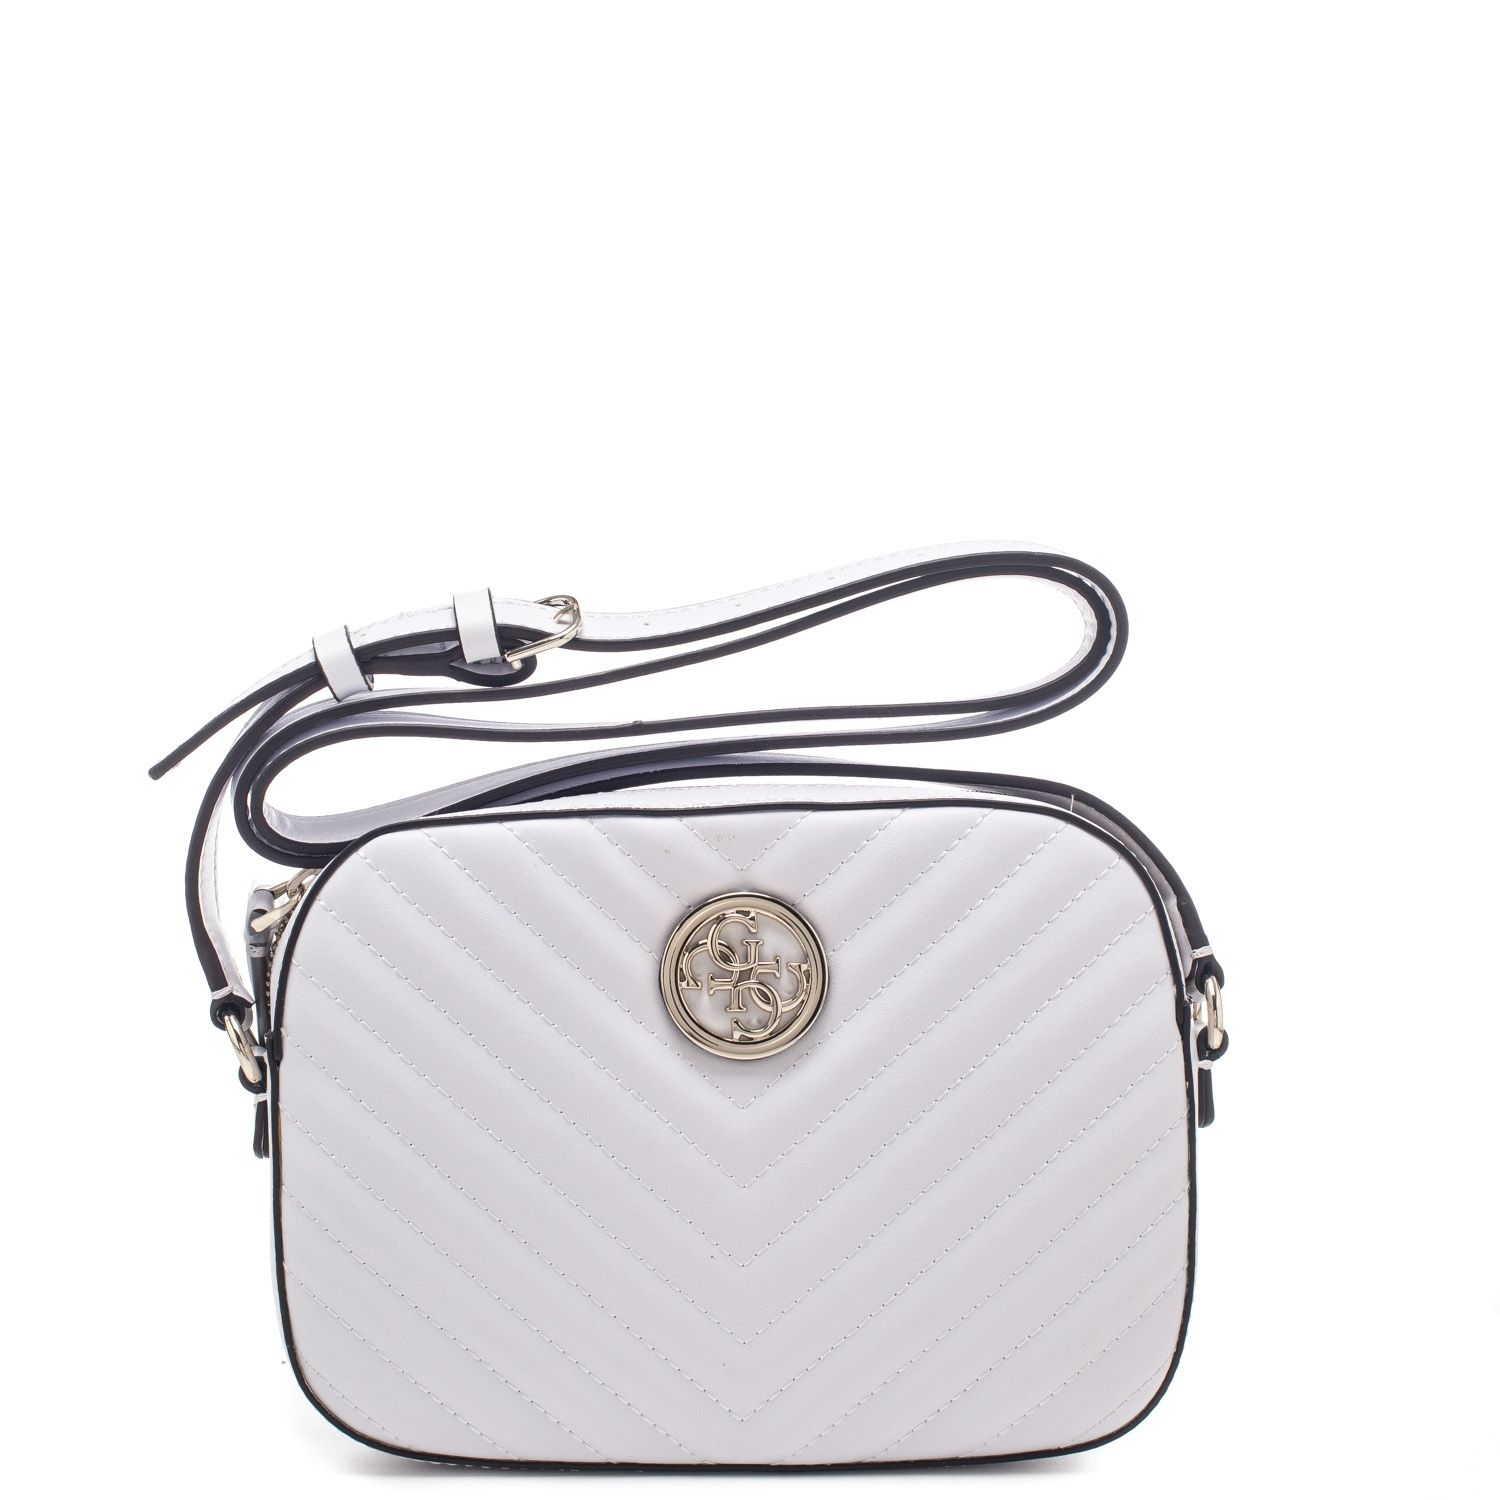 Borsa a tracolla donna Guess in ecopelle con cuciture frontali, 4G logo in metallo frontale